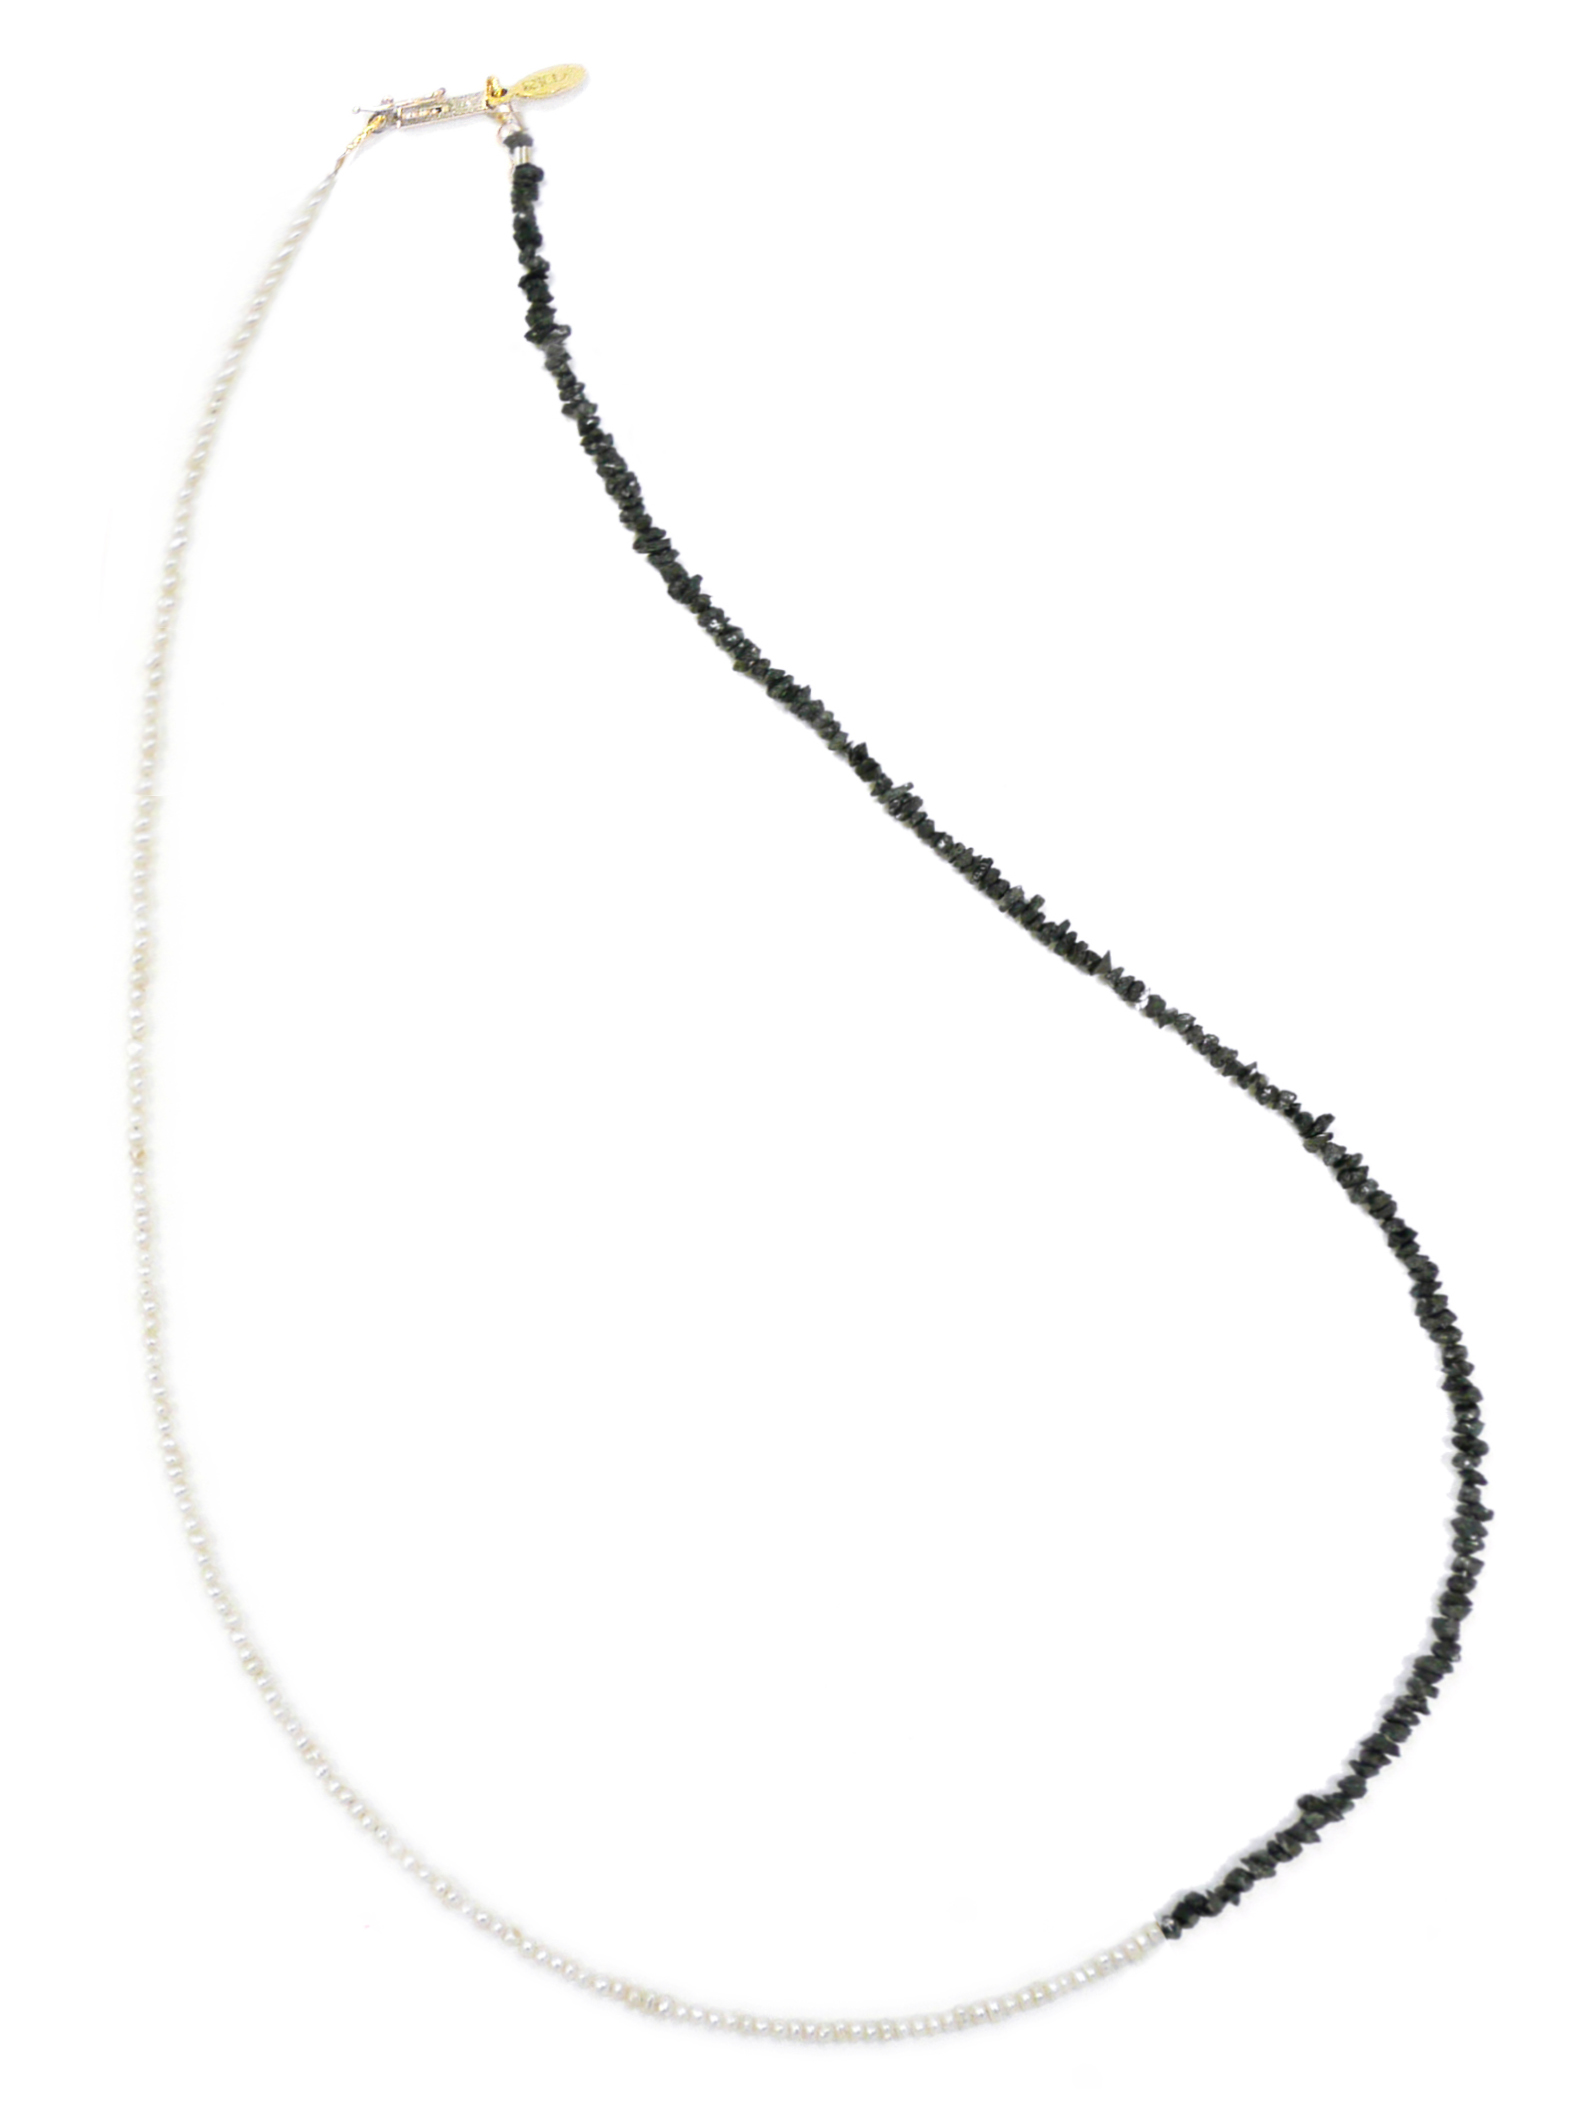 Delicate BLACK DIAMOND AND PEARL Necklace Jewelry by Nektar De Stagni May also be worn as bracelet